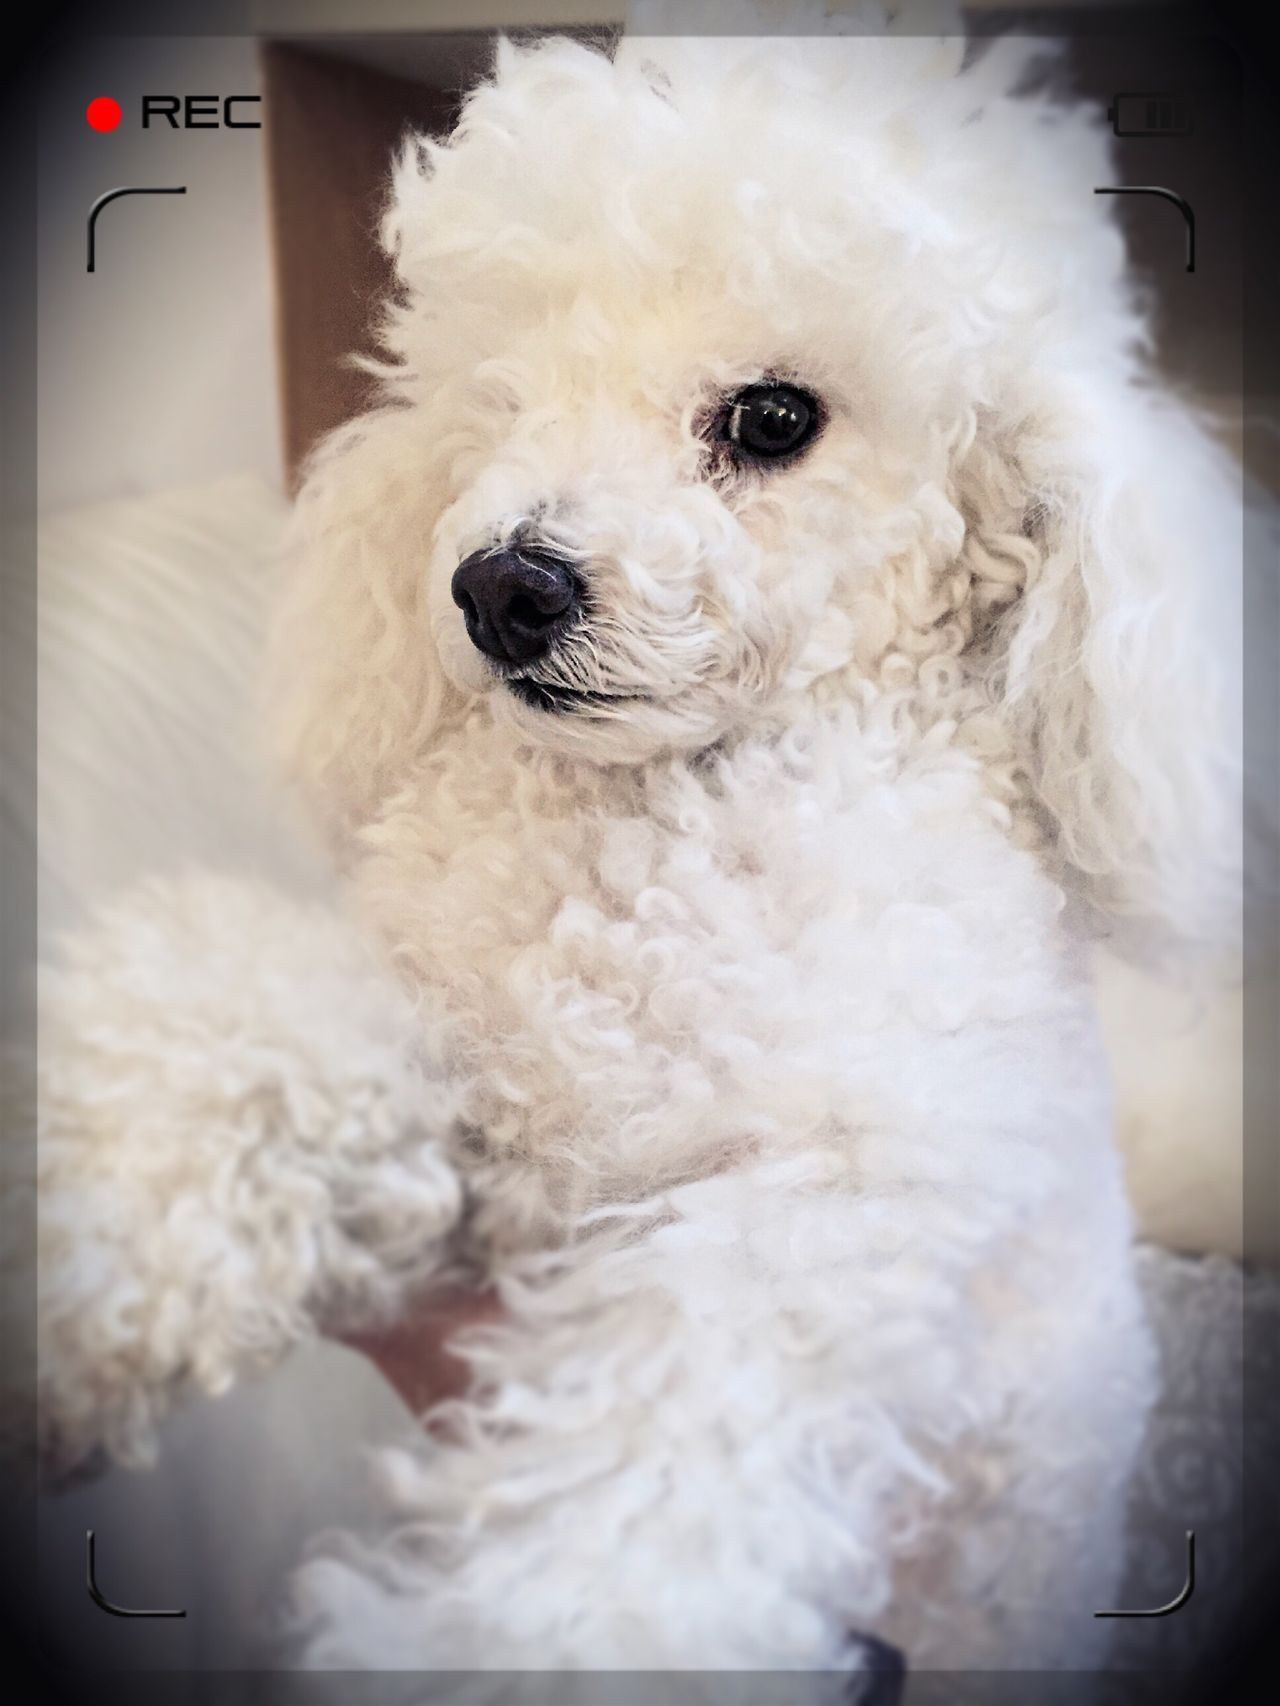 Poodle Poodletoy Poodlemania Pet Dog Funny Animal Photography Animal Head  Animal Themes One Animal Pets Indoors  Close-up Looking At Camera Fluffy Domestic Animals Mammal Cute Animal Nose No People Hairy